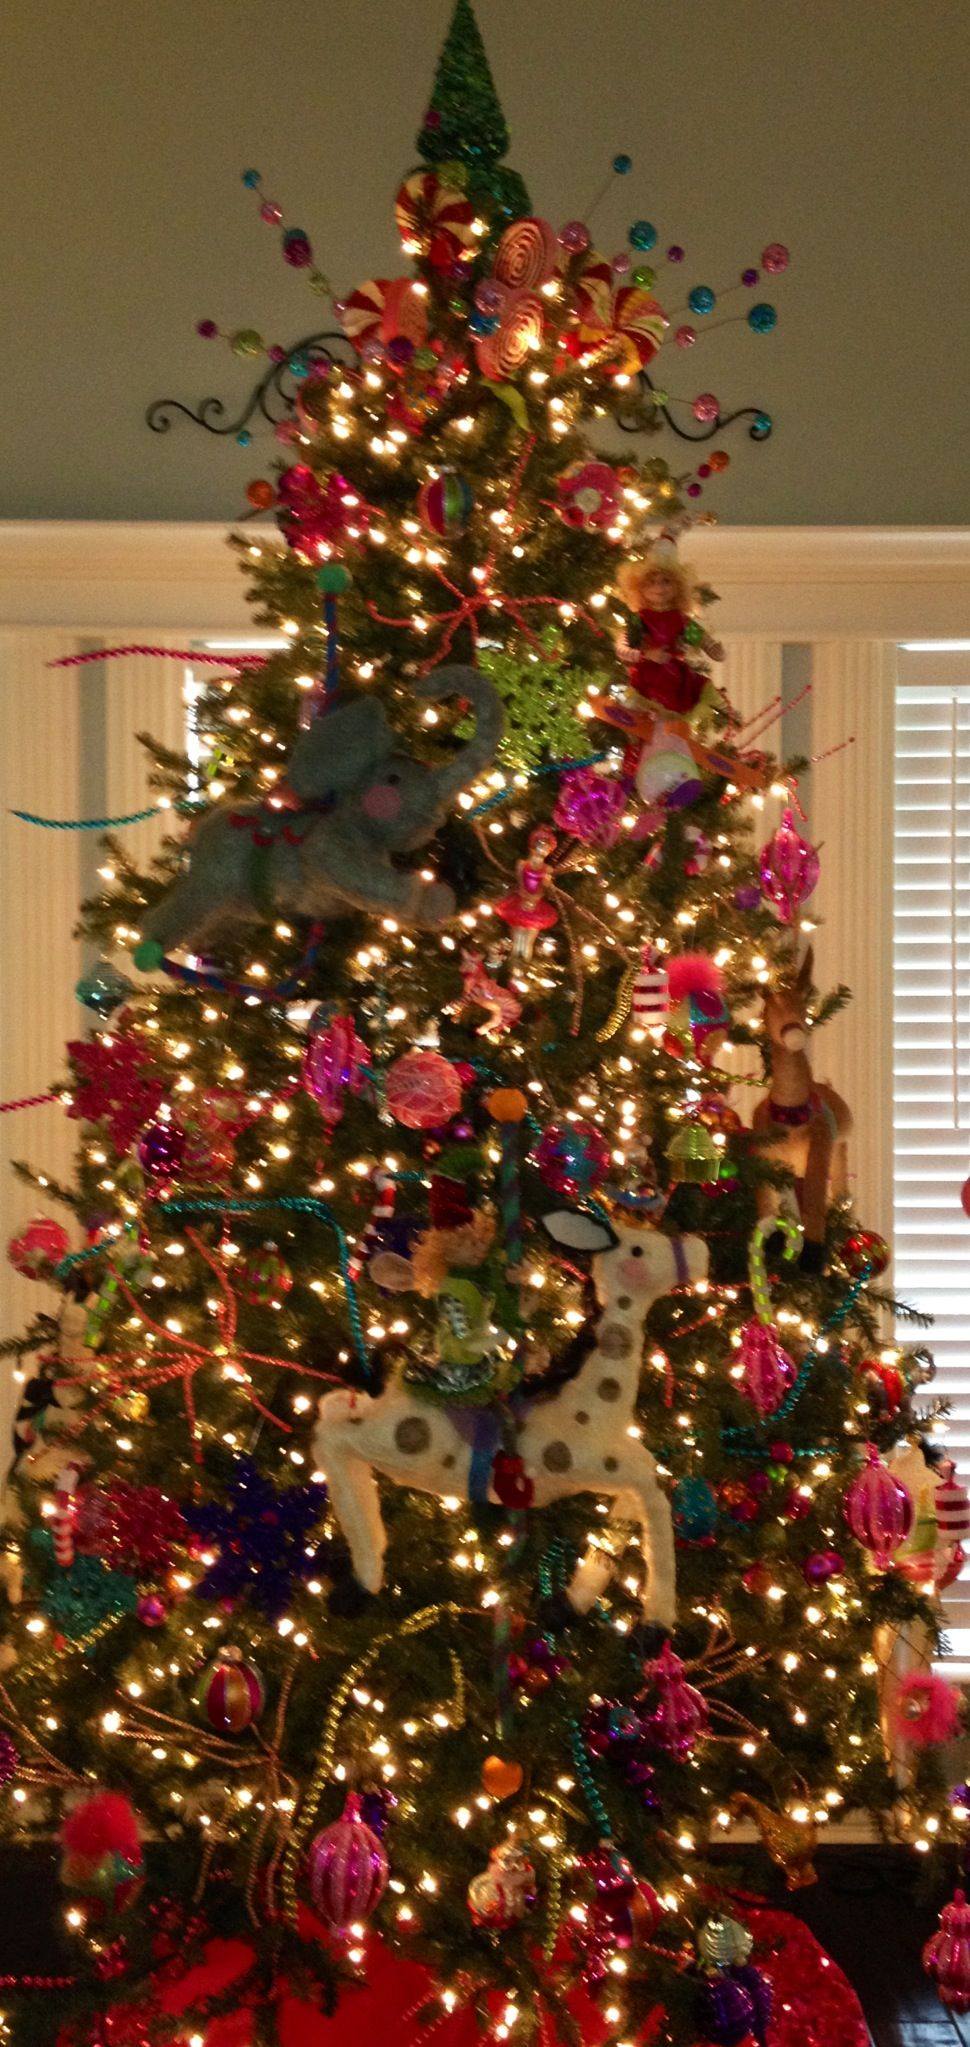 Our Circus themed tree (With images) | Christmas tree ...